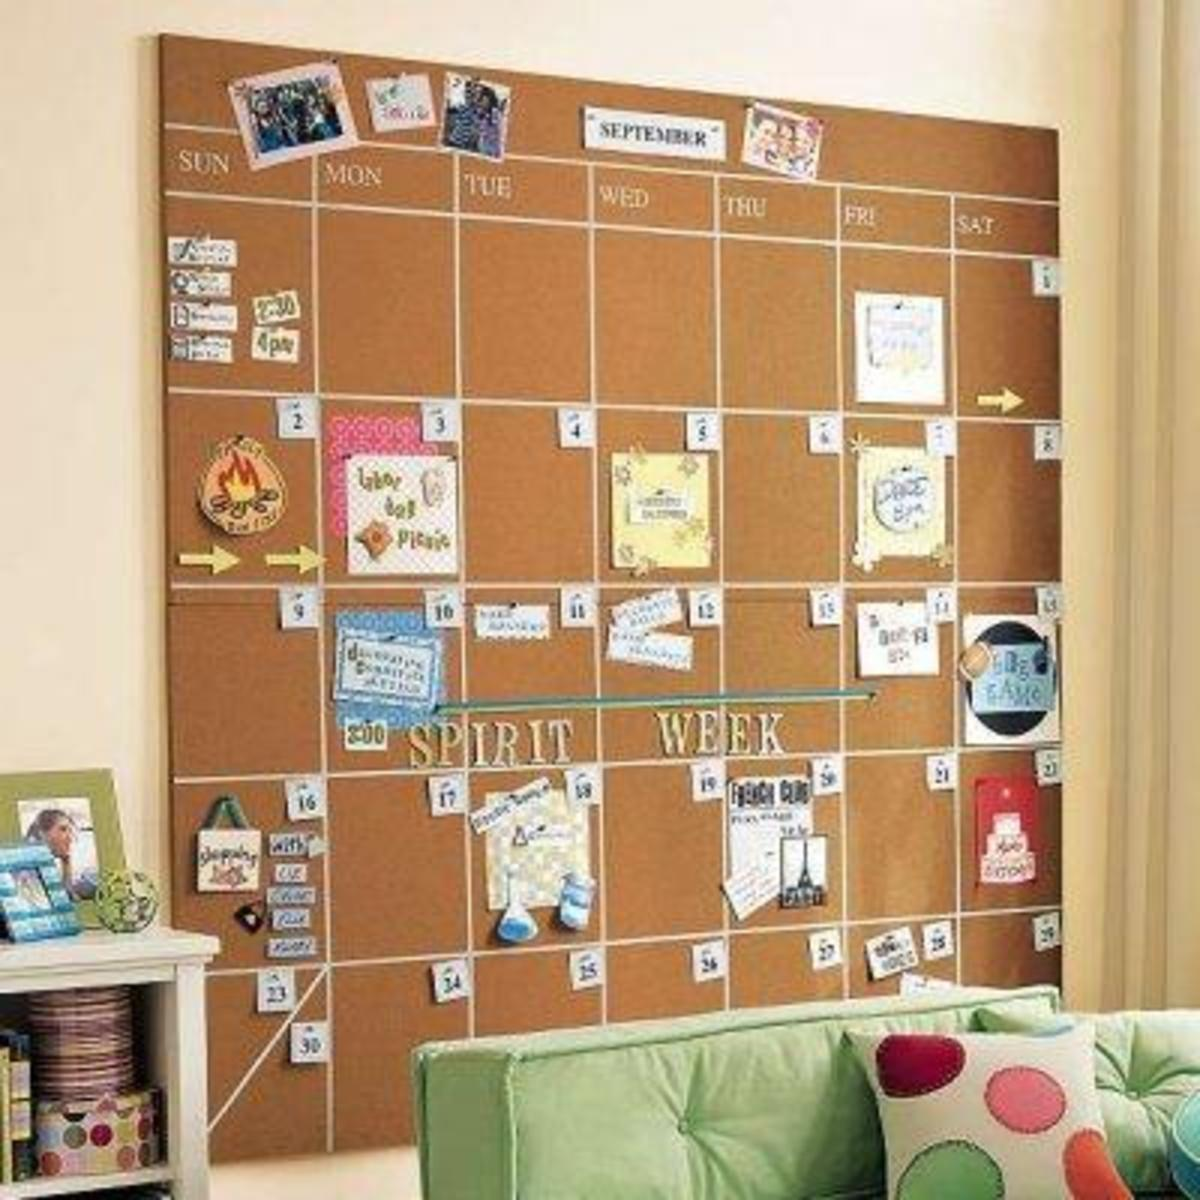 Cool idea for a large cork board on wall.